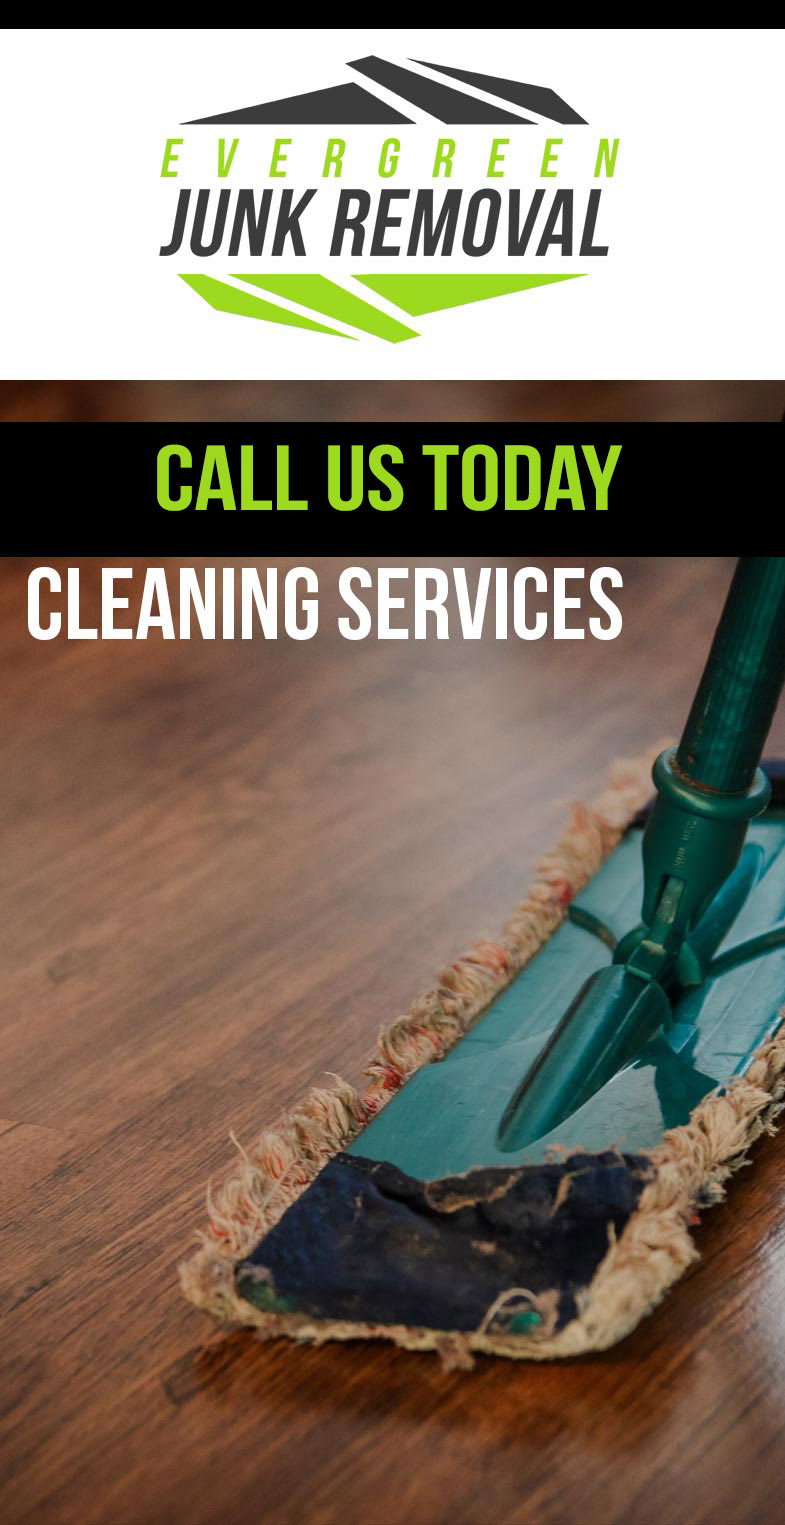 Haverhill Florida Maid Services